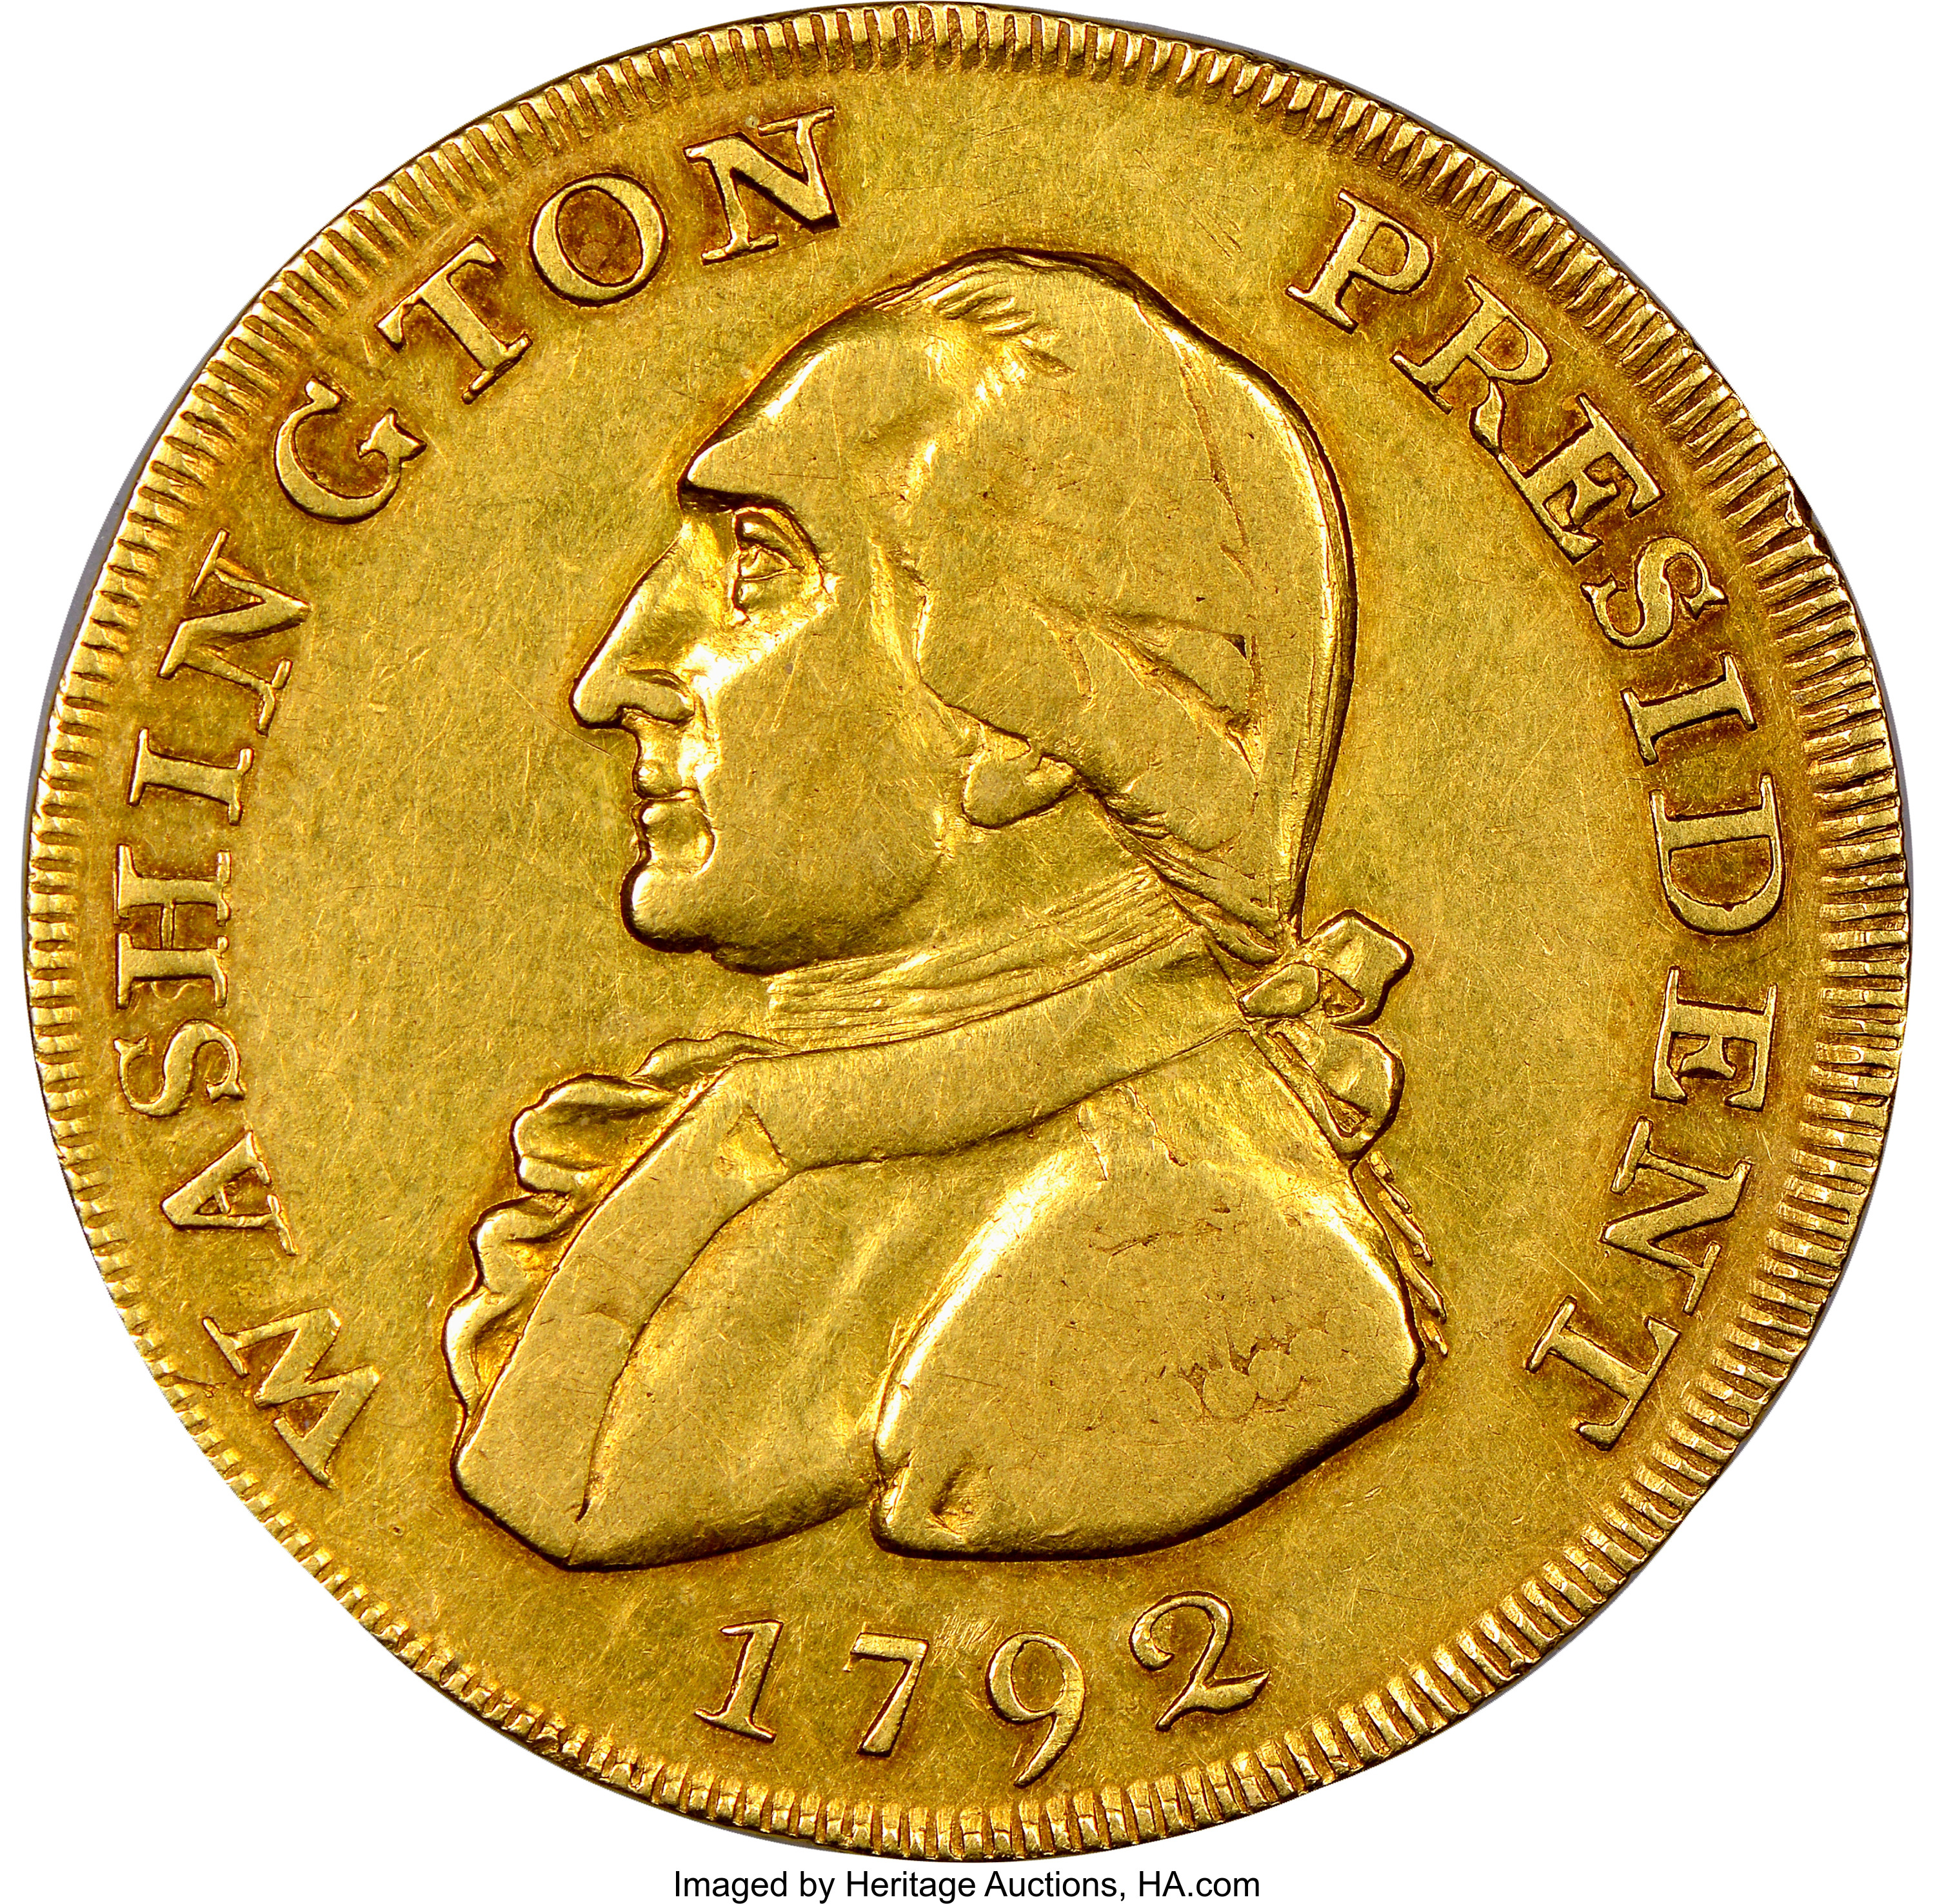 thumbnail image for The 1792 Gold Piece that Might Have Once Jingled in George Washington's Pocket Sold for $1.74 Million in Philadelphia